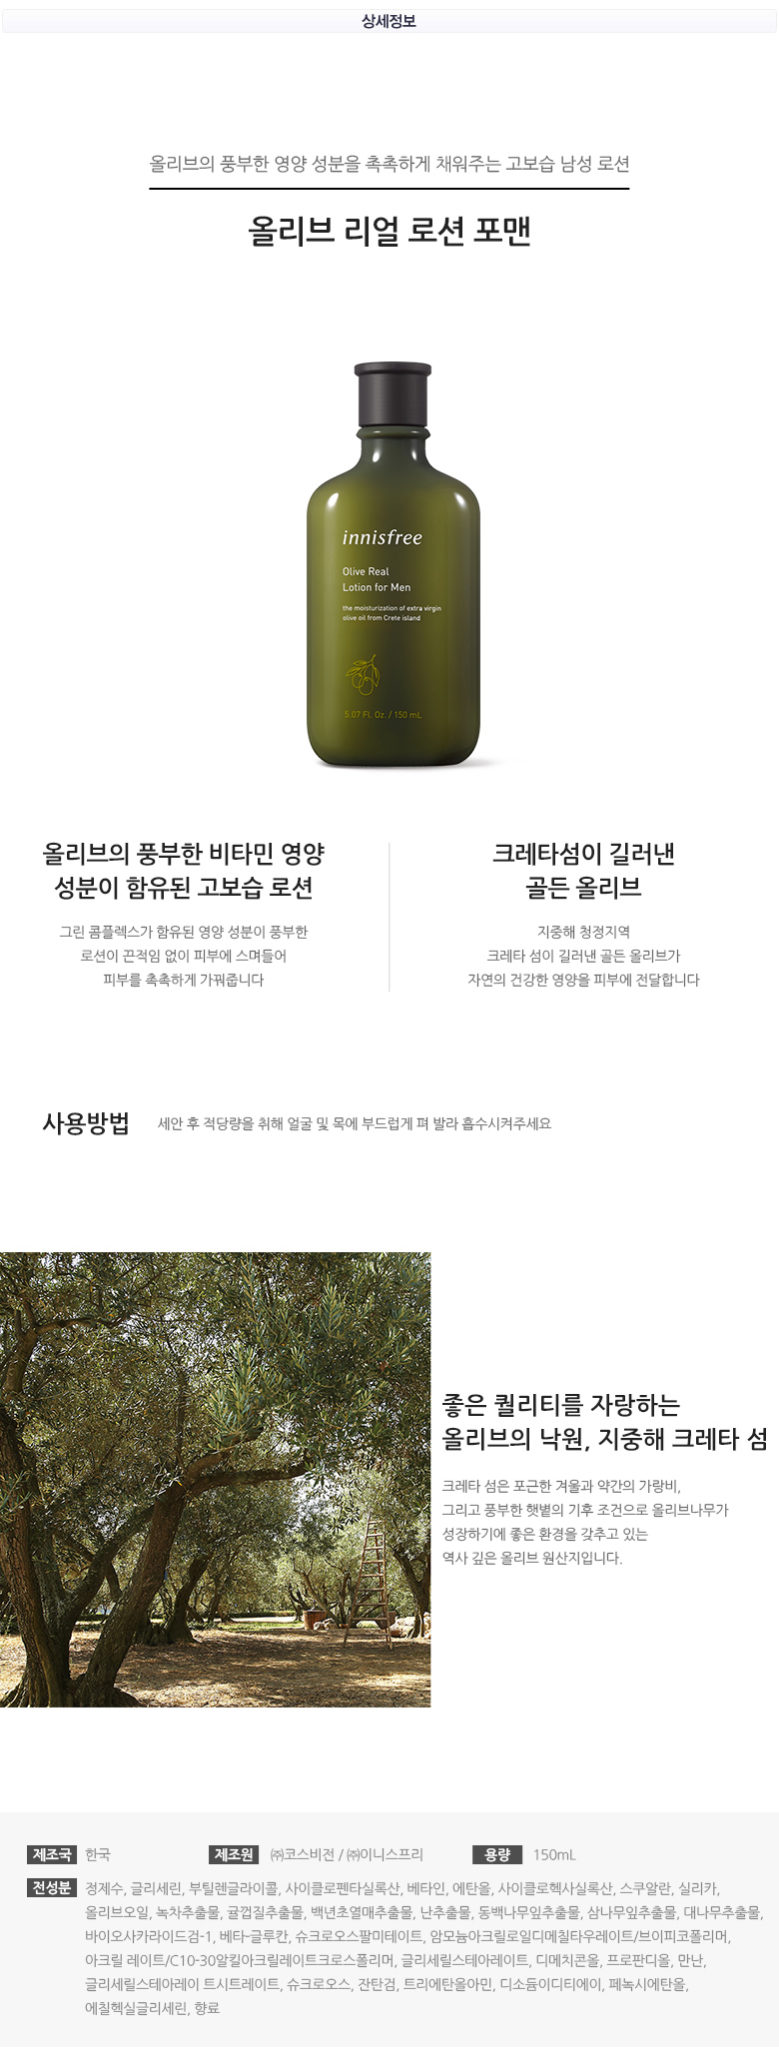 Innisfree Olive Real Lotion For Men